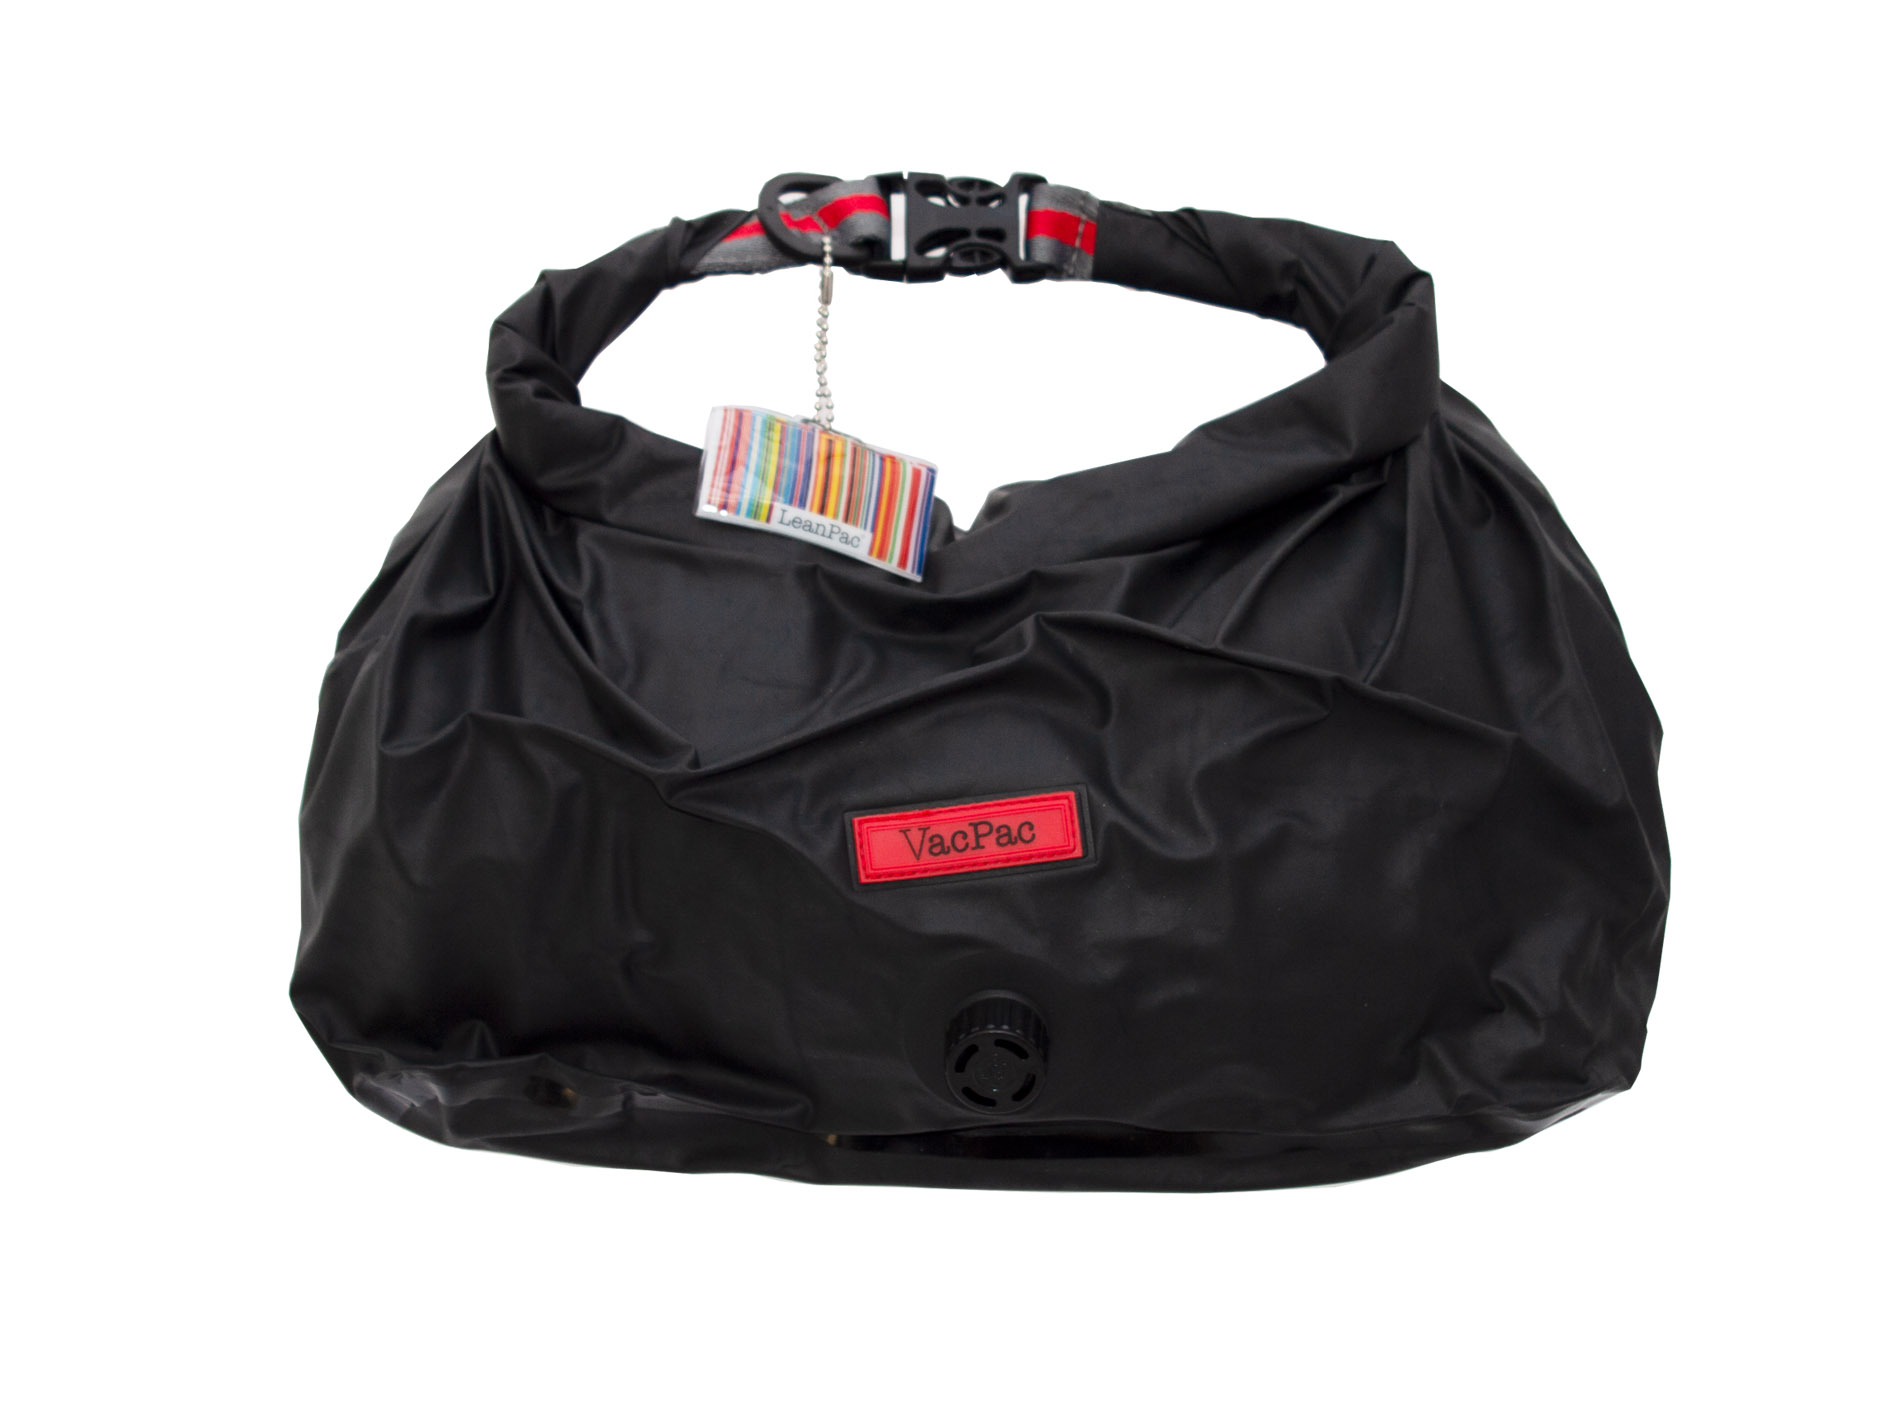 The Dry/Wet VacPac Compressible Bag